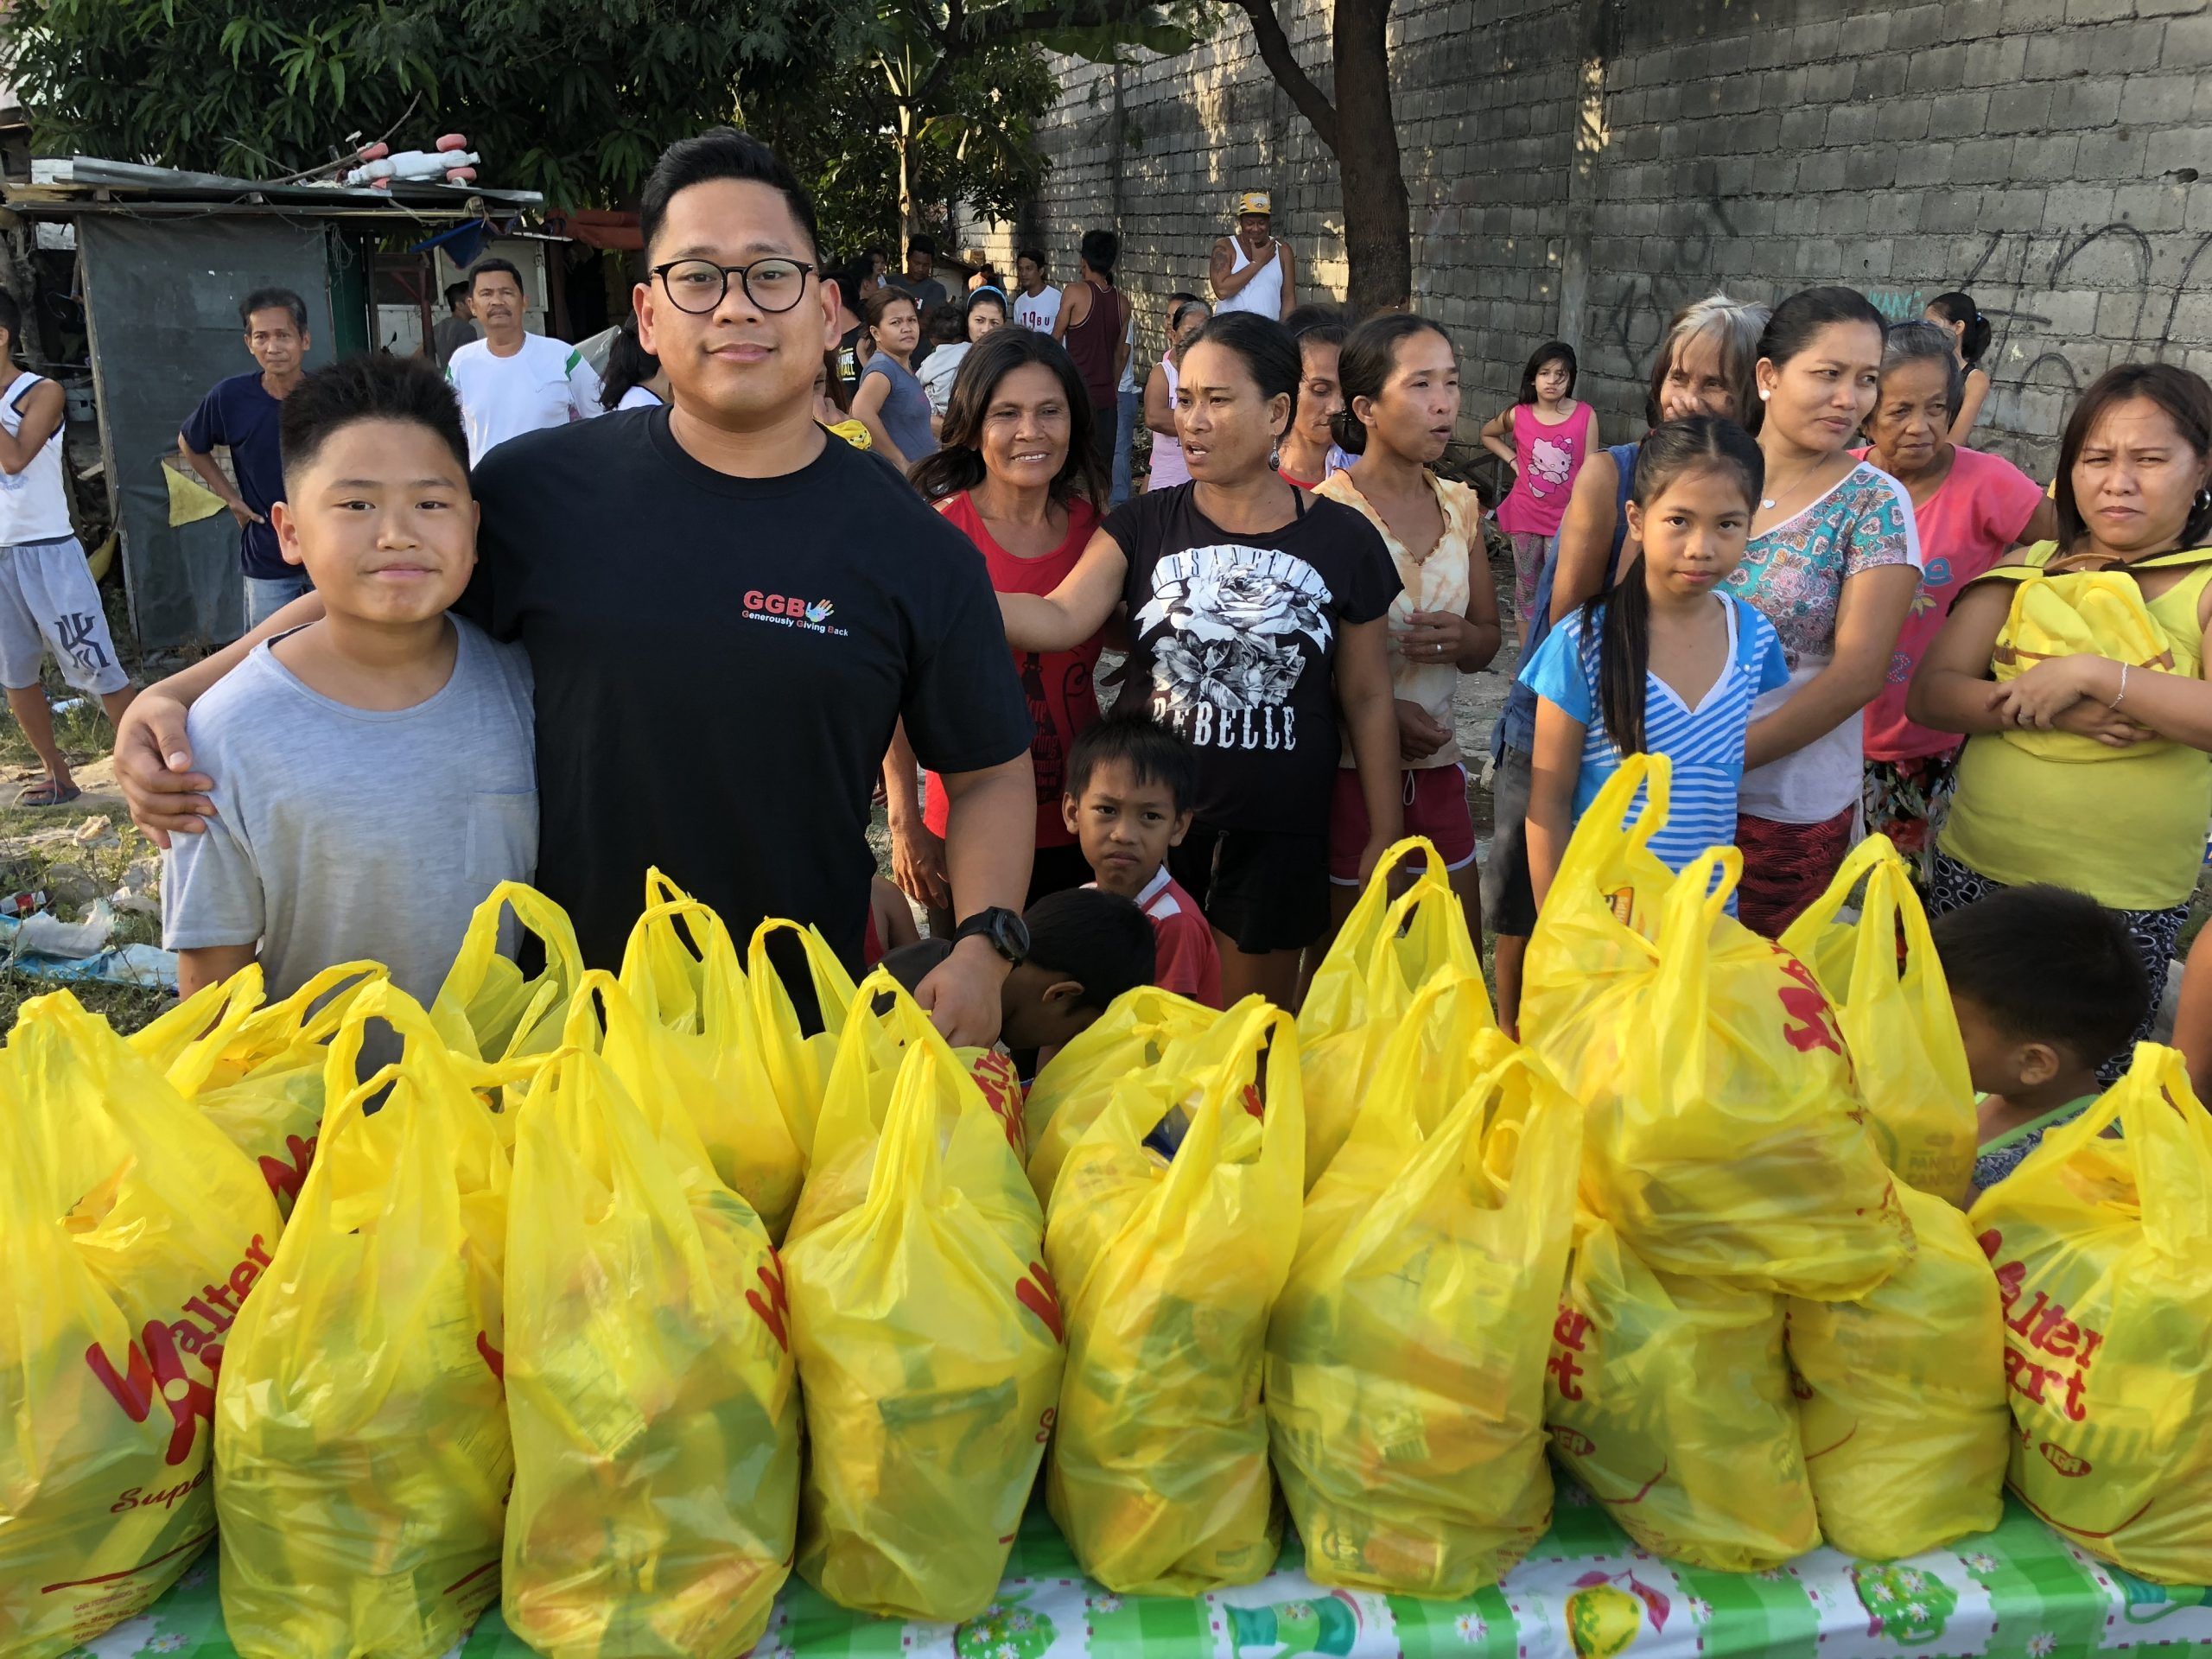 2018-02 Food hampers for poor families in Manila philippines